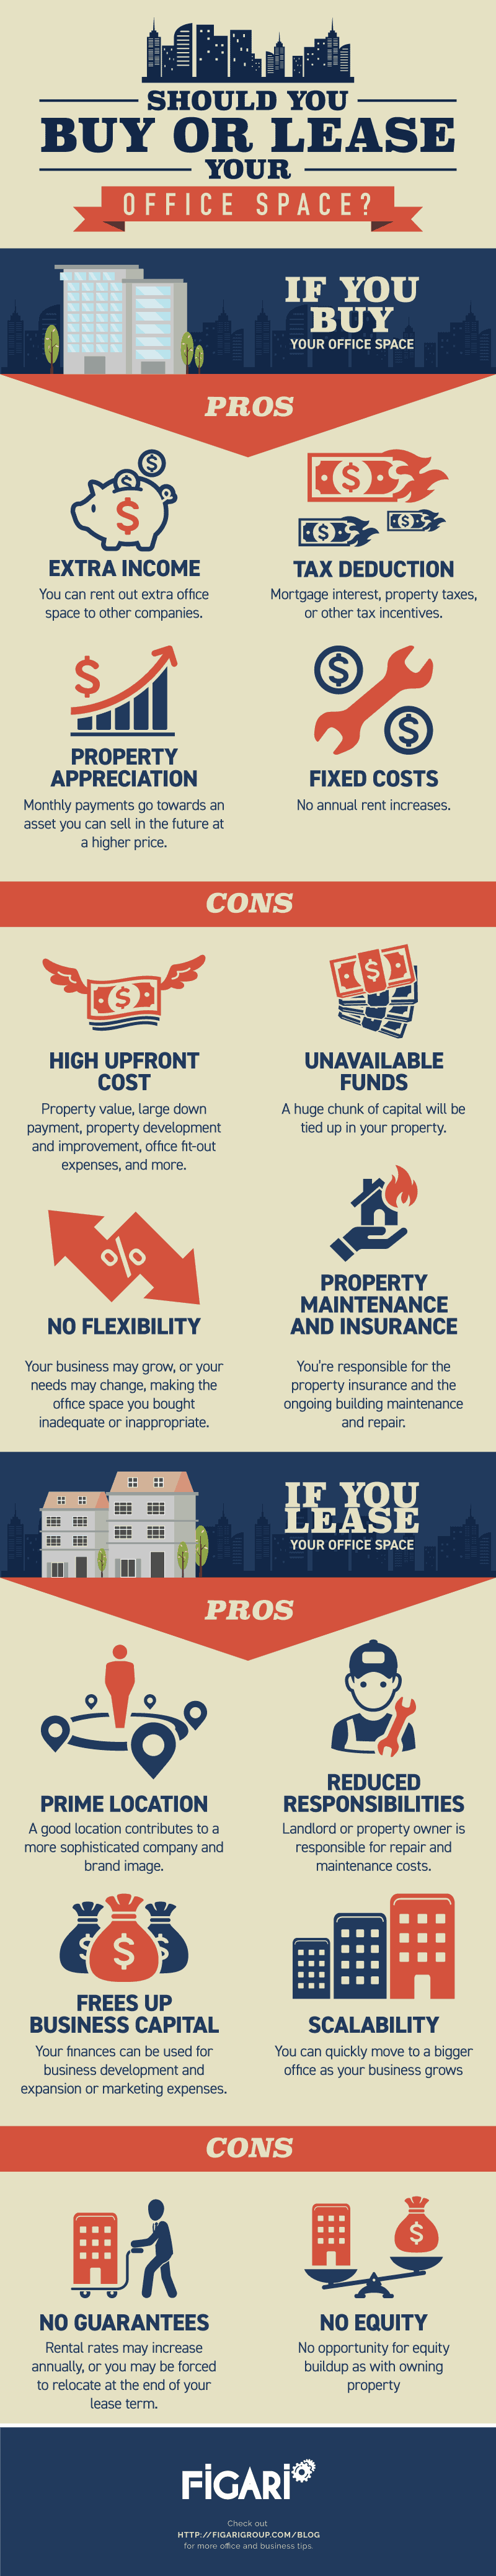 buy or lease office space infographic